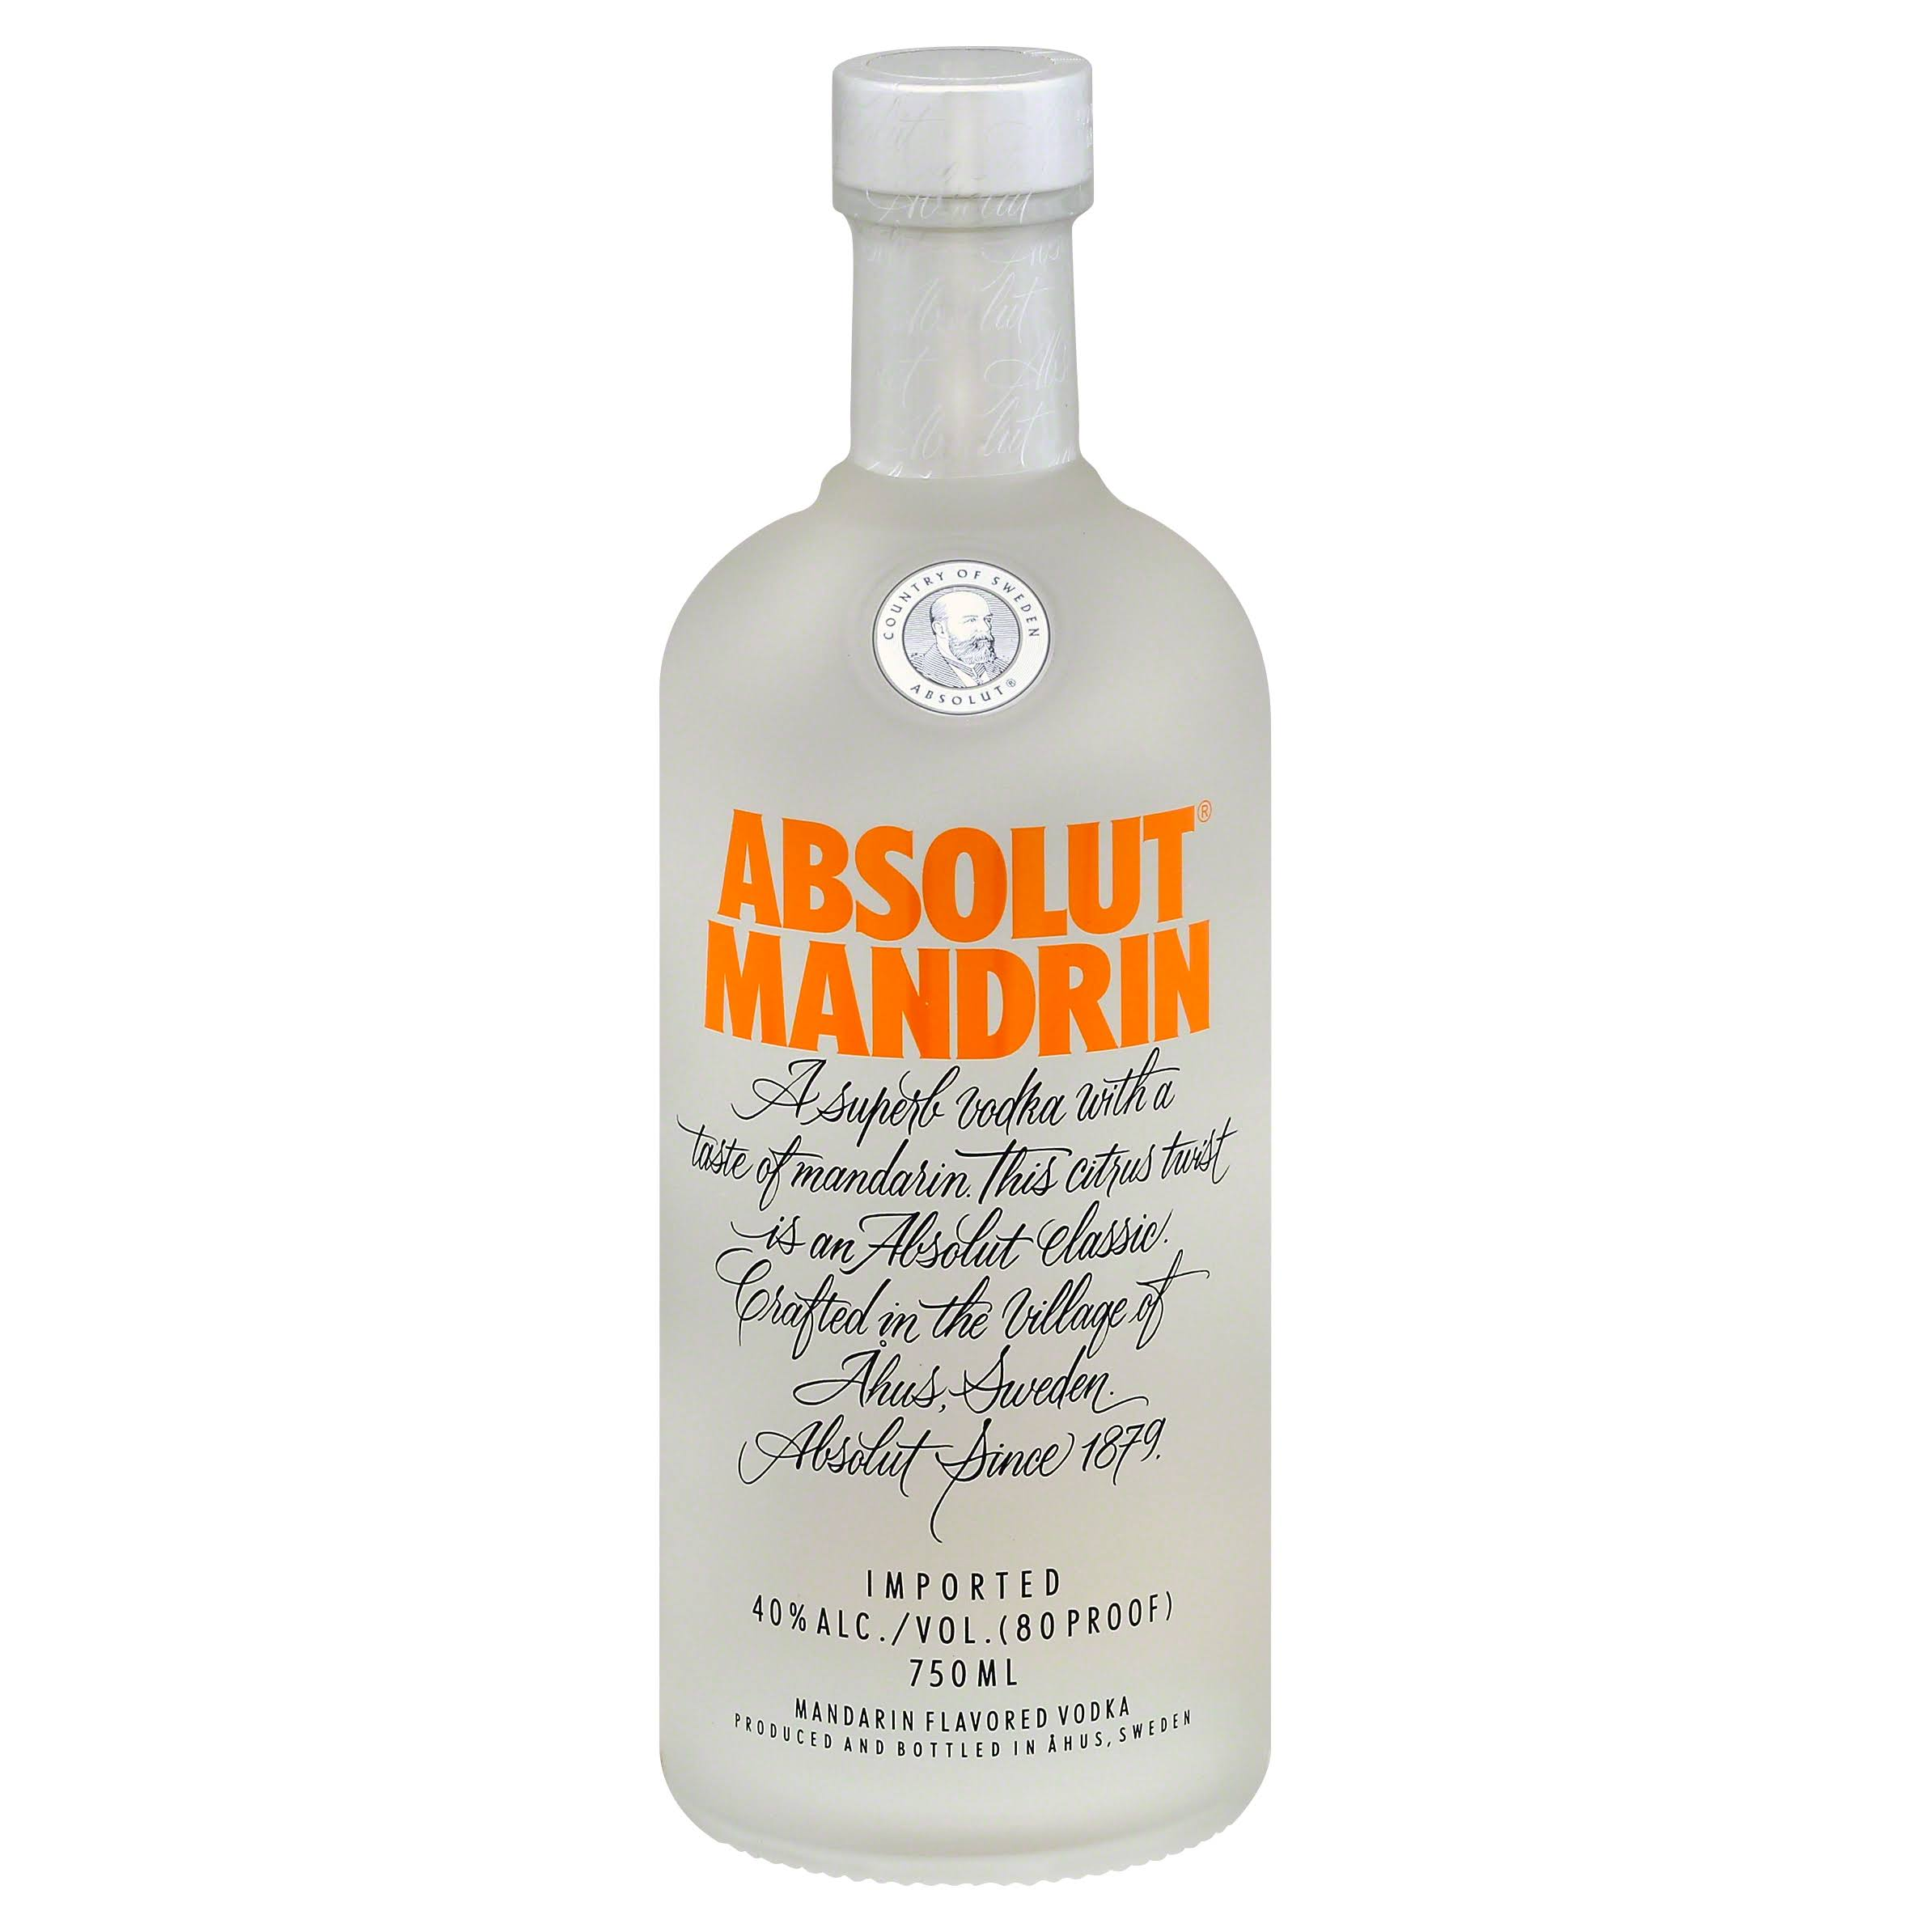 Absolut Vodka, Mandrin - 750 ml